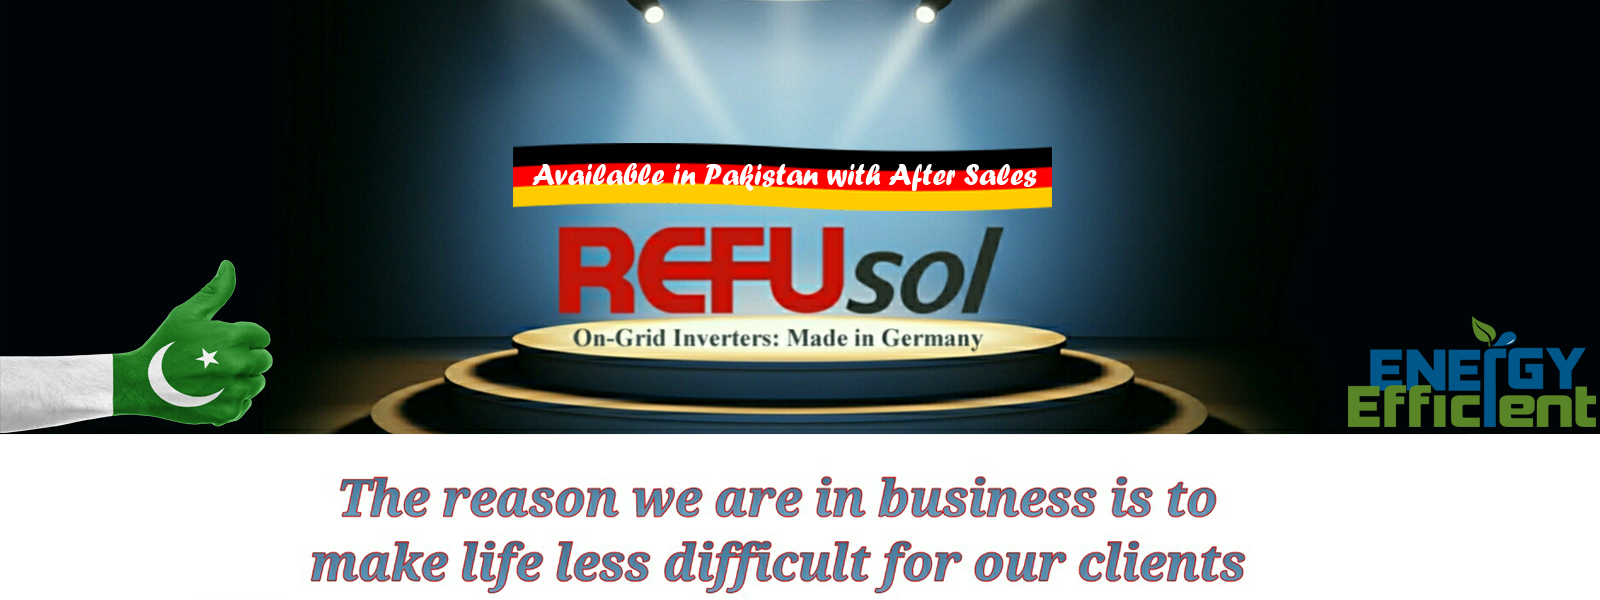 Refusol-inverter-slide-pakistan-price